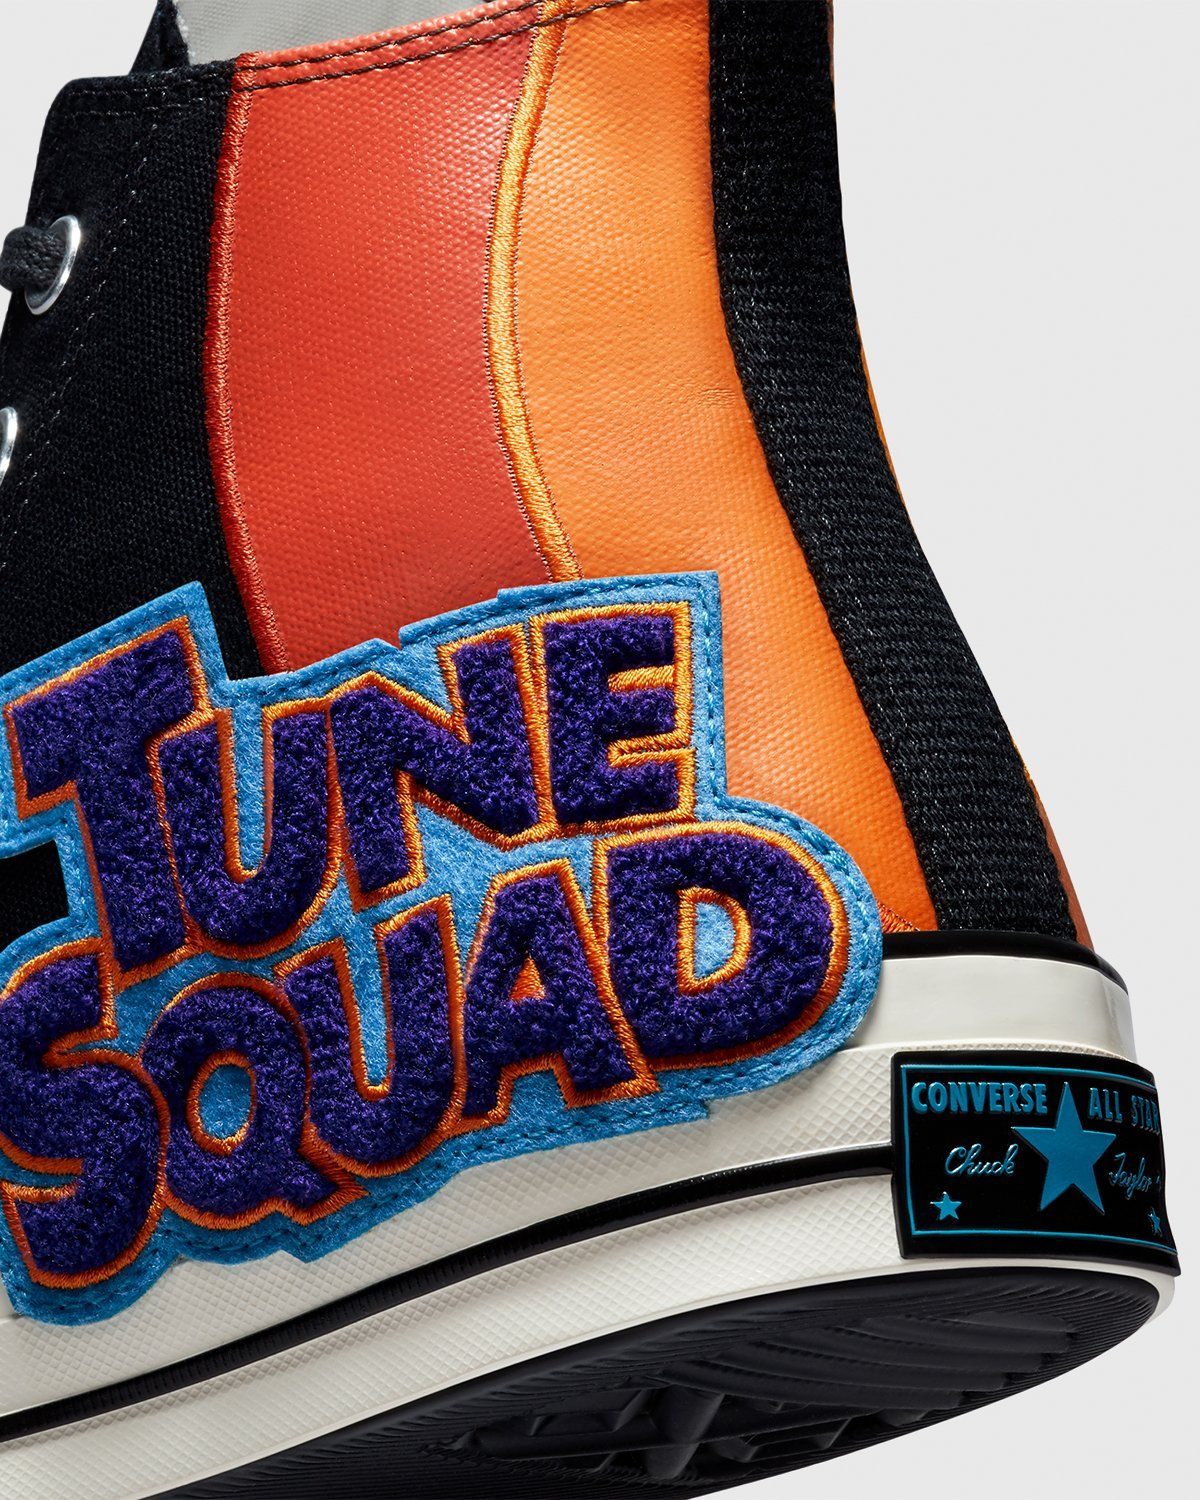 Converse x Space Jam: A New Legacy – Chuck Taylor 70 Multi - Image 7